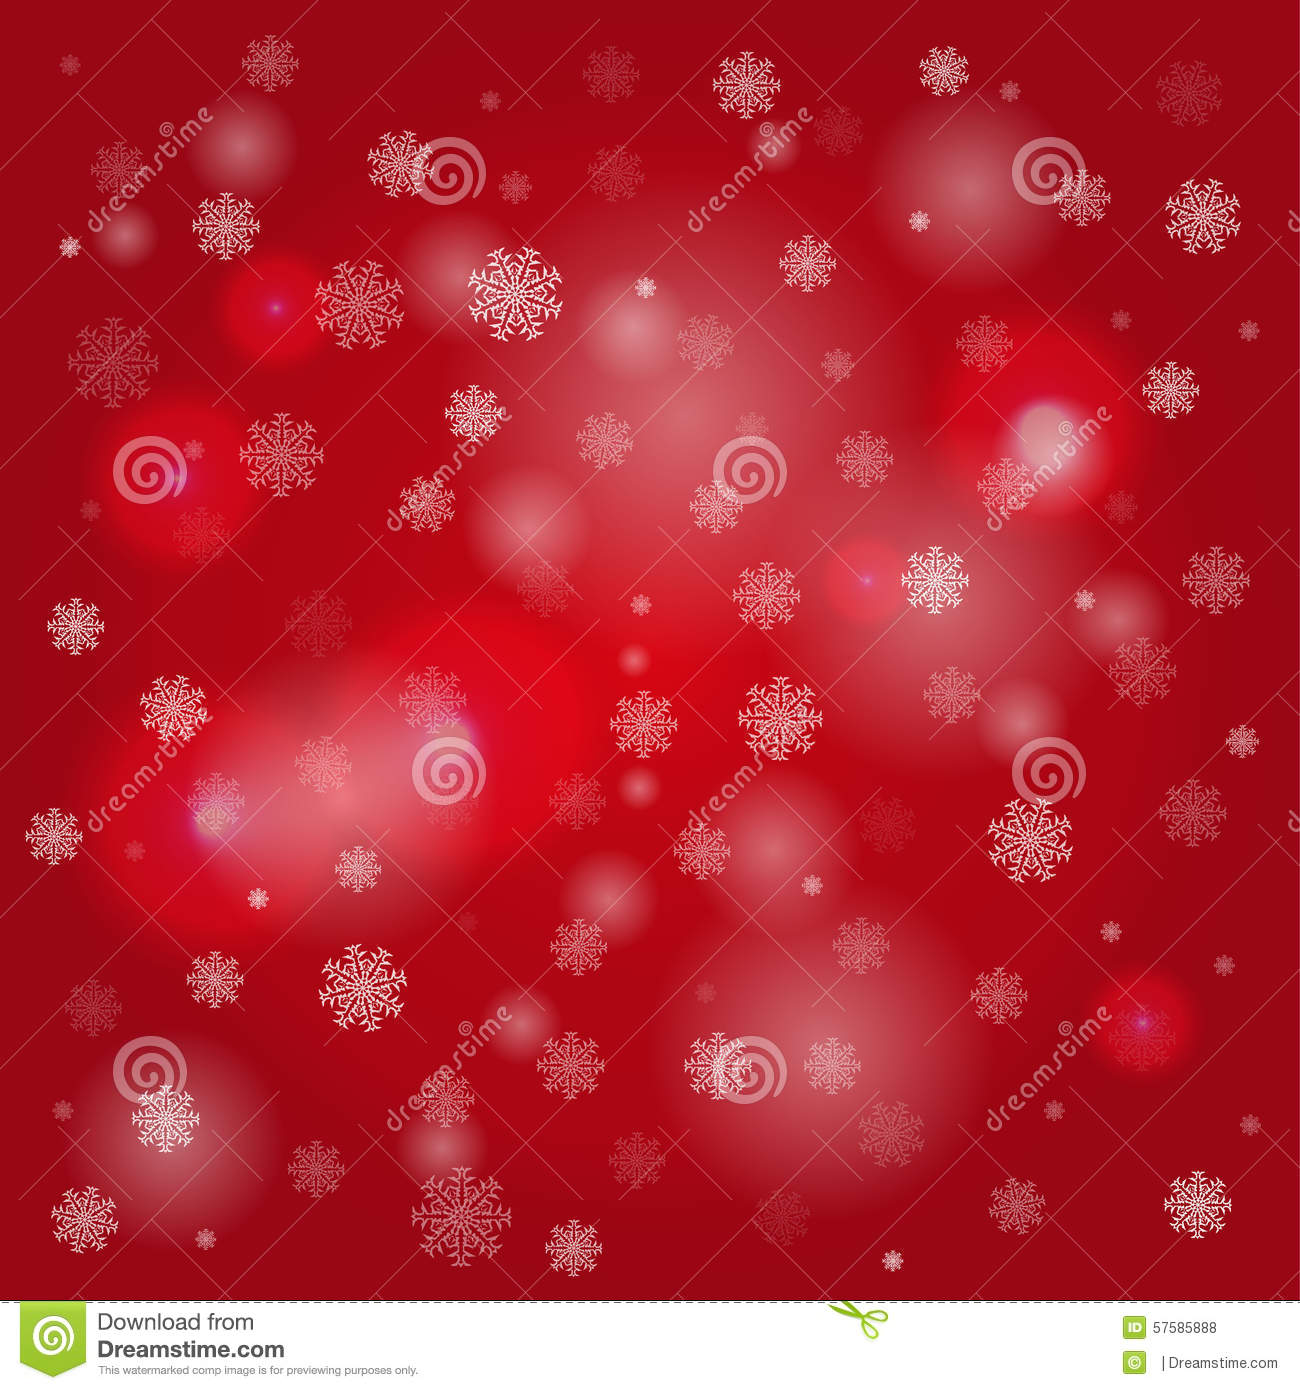 snowflakes and blurry lights on dark red background stock vector